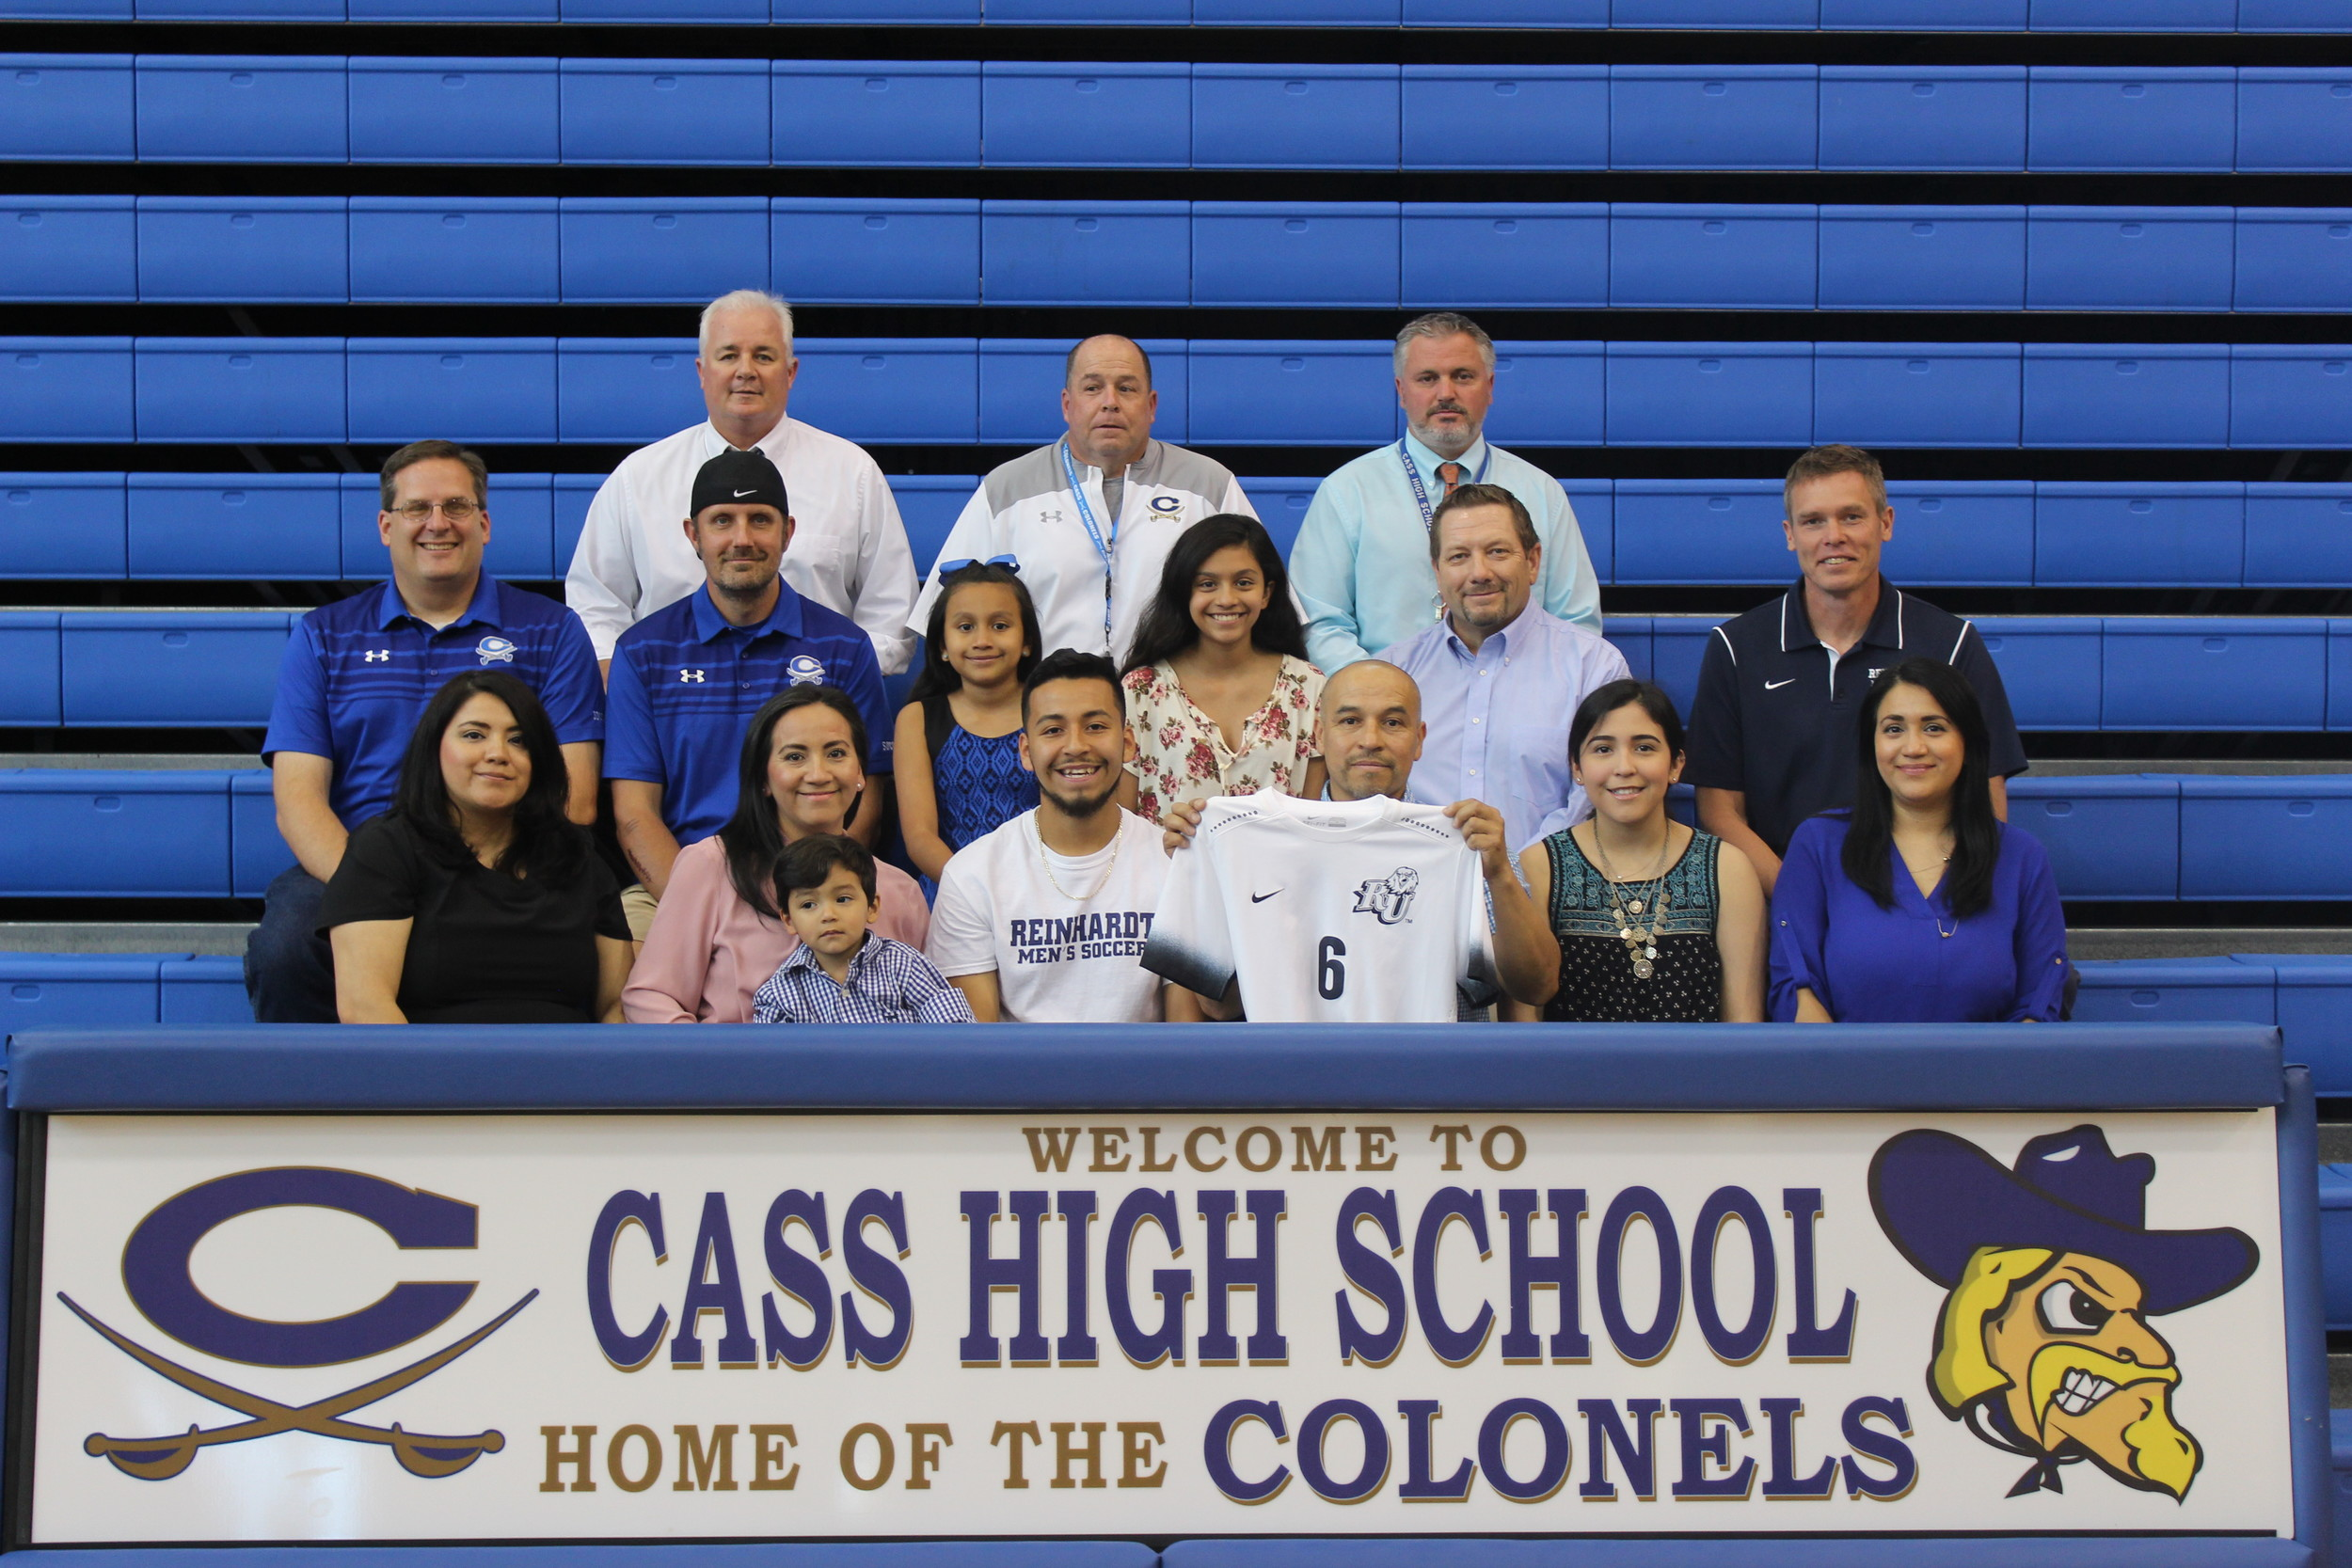 Cass High senior Anthony Robledo, center, signed Wednesday to play soccer at Reinhardt University in Waleska. On hand for the signing were, from left, front row, Nancy Benjume, aunt; Maricela Robledo, mother; Santiago Robledo, brother; Constancio Robledo, father; Stephanie Robledo, sister; Belinda Benjume, aunt; middle row, Dan Armstead, Cass assistant coach; E.J. Kukoly, Cass assistant coach; Shania Hernandez, cousin; Yahaira Hernandez, cousin; Terry Floyd, Cass head coach; Joey Johnson, Reinhardt head men's soccer coach; back row, Nicky Moore, Cass athletic director; Bobby Hughes, Cass head football coach; and Mike Nelson, Cass High principal.